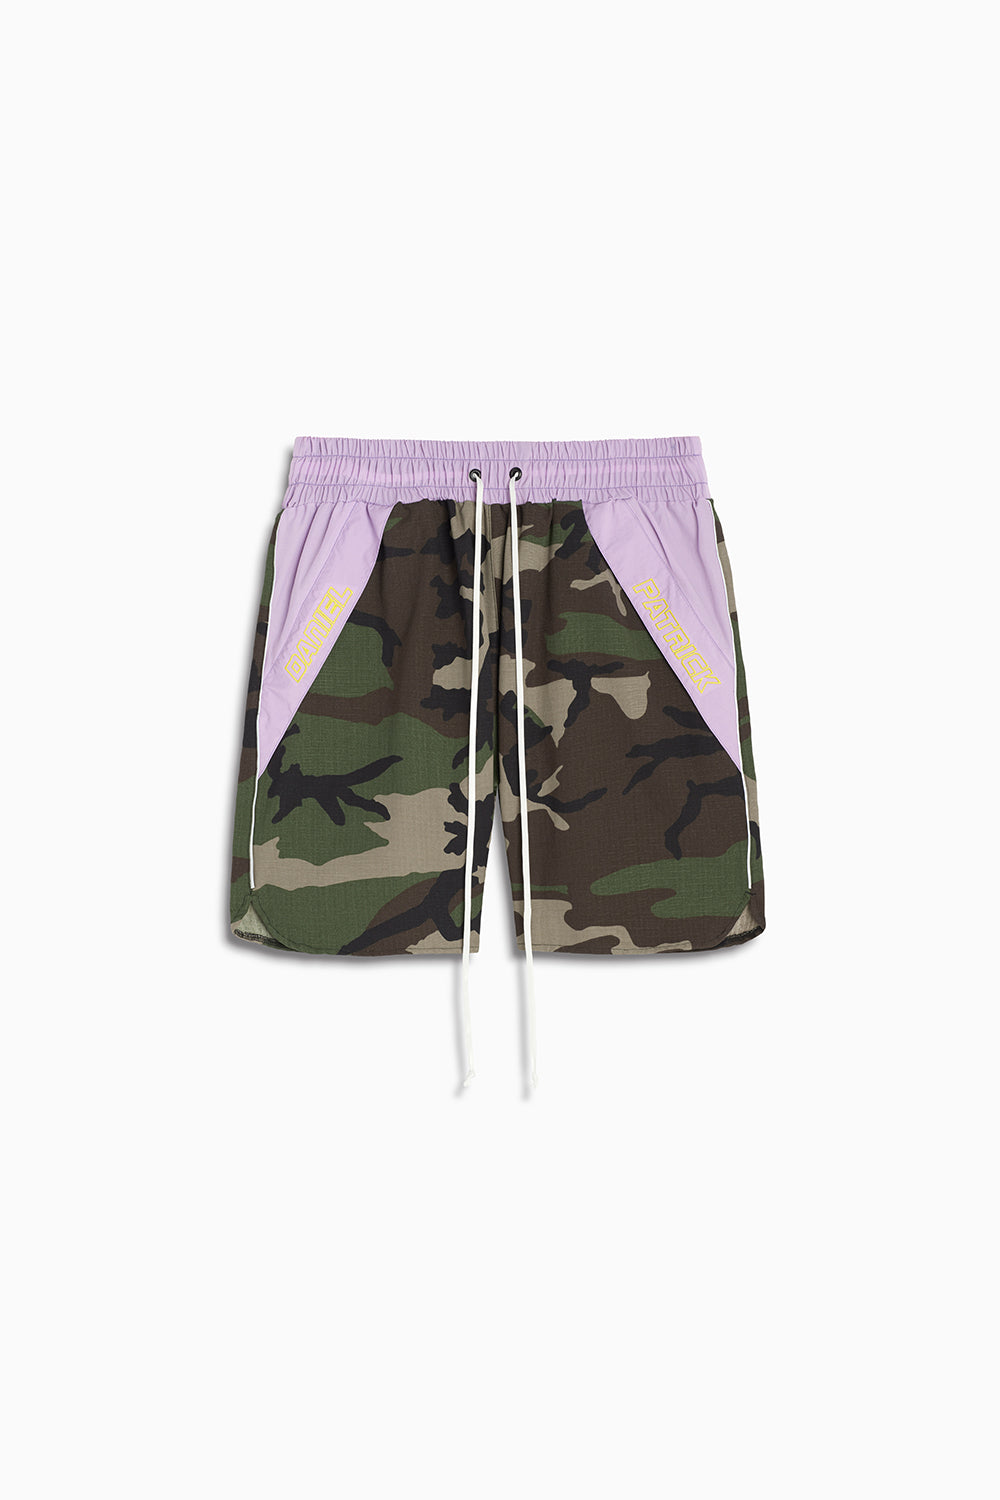 Logo Pocket Gym Short / camo + 3m + purple haze